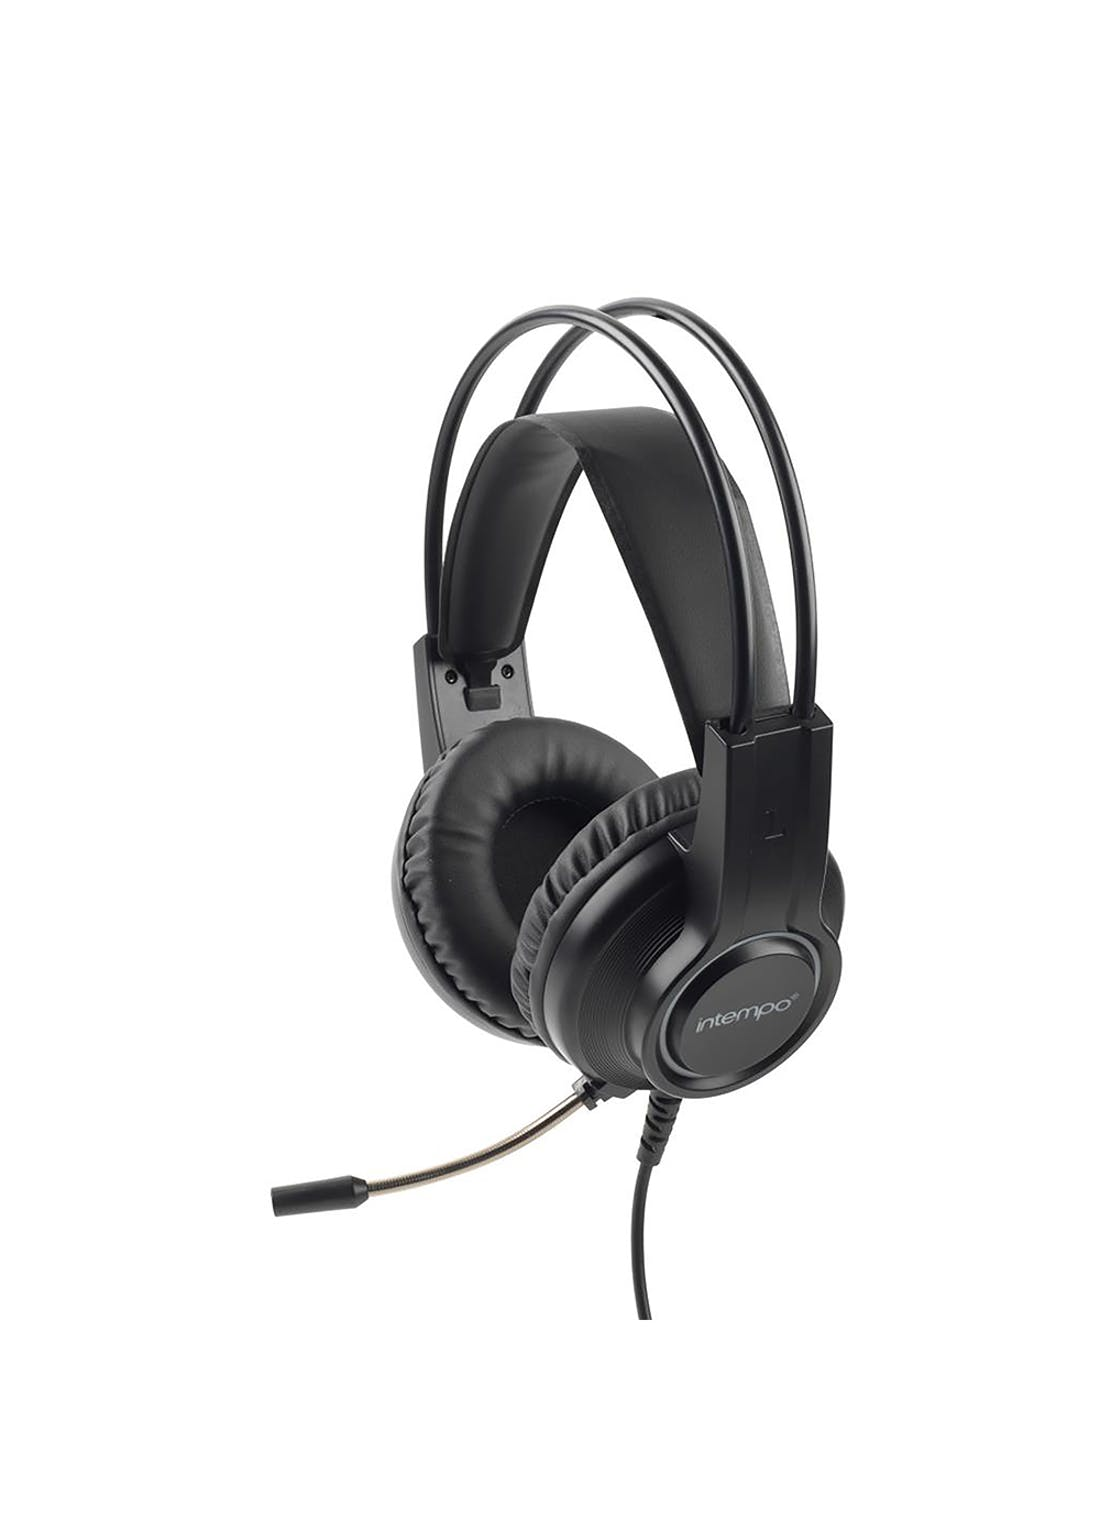 Intempo Wired Gaming Headset (21cm x 19cm x 10cm)